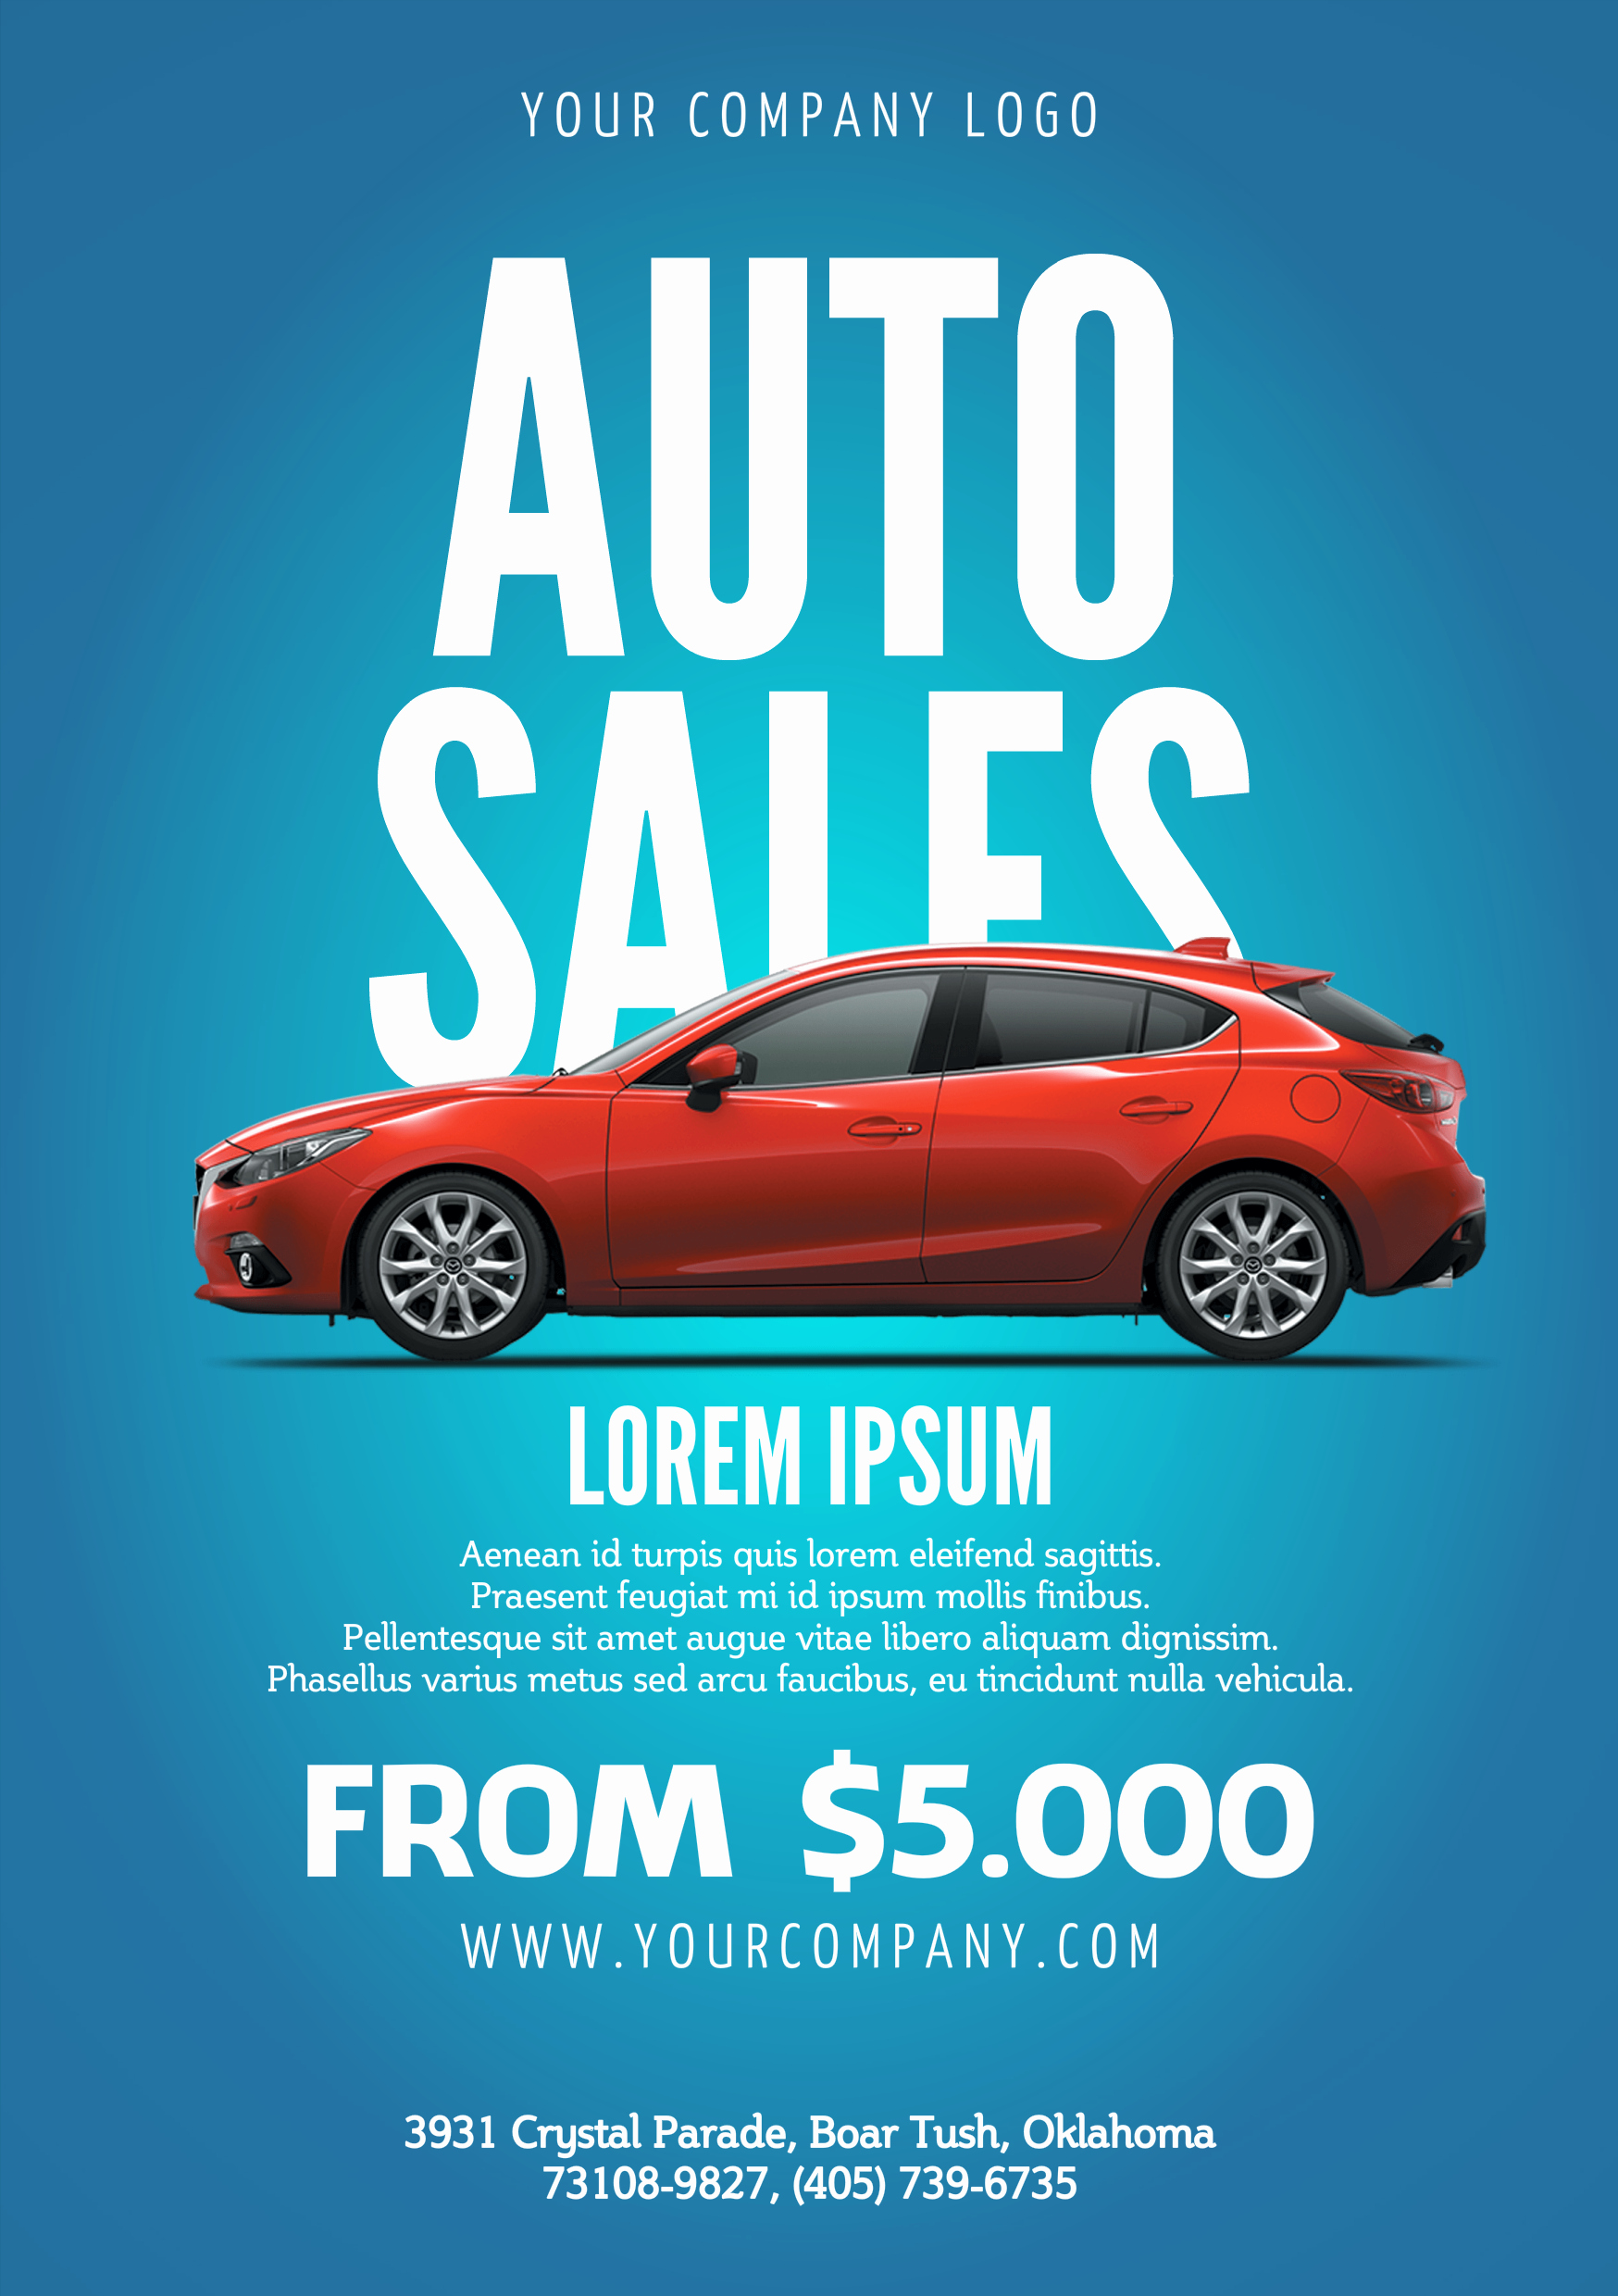 Car for Sale Flyer Template Lovely Pin by Leadzmachine Video Mercials On A5 Promotional